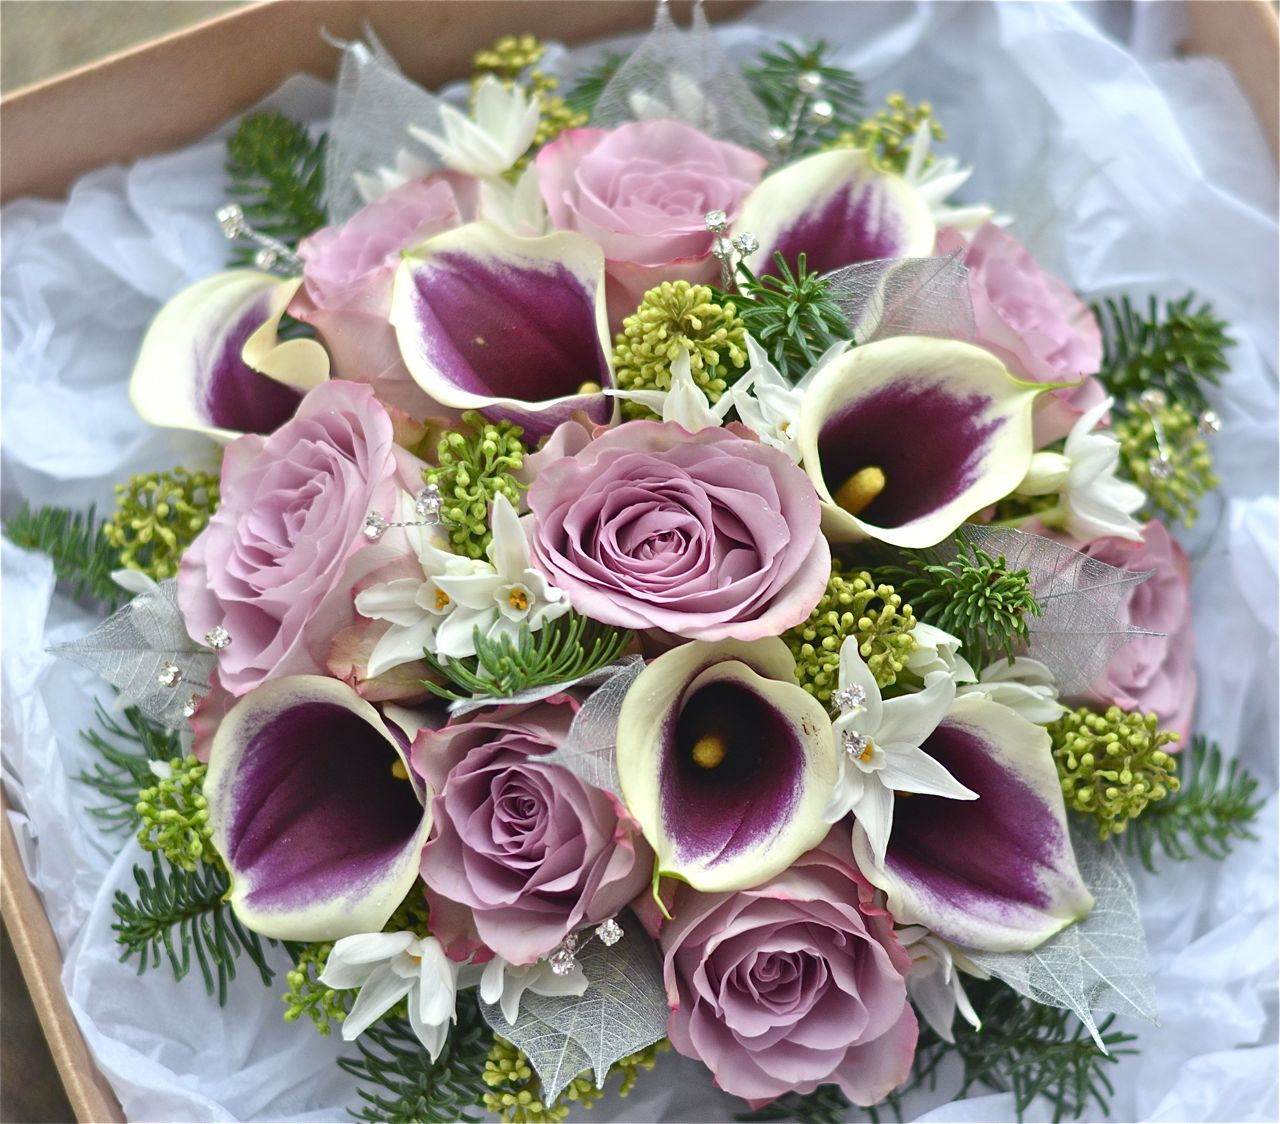 Winter Wedding Flowers Uk: Wedding Flowers Blog: Lacey's Plum And Silver Winter